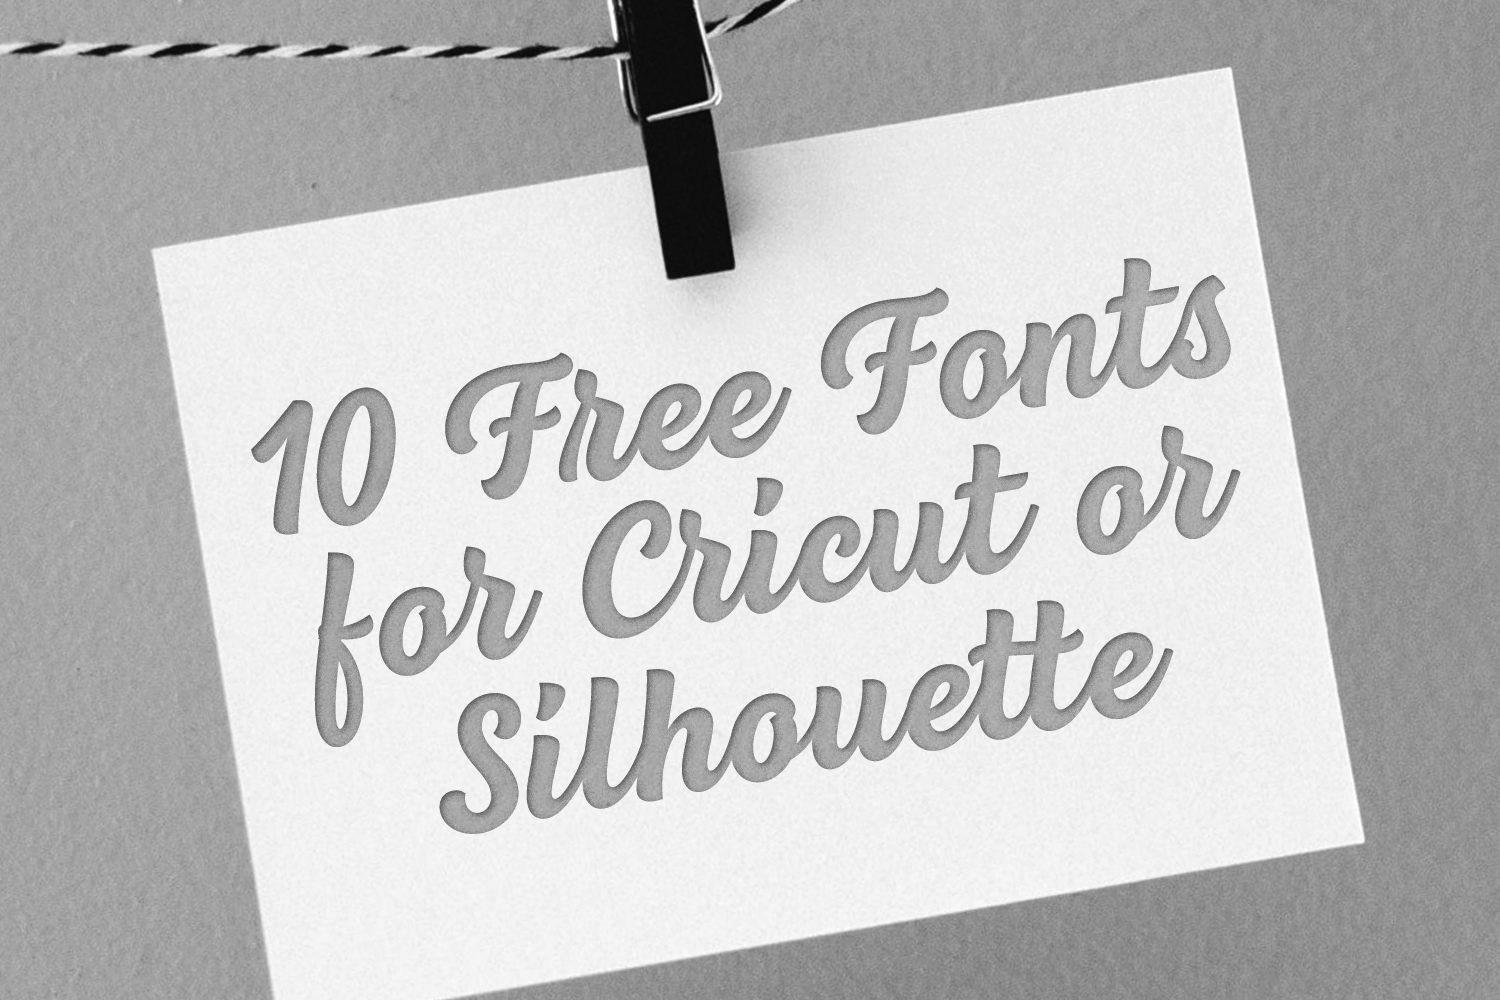 10 Free Fonts for Cricut or Silhouette